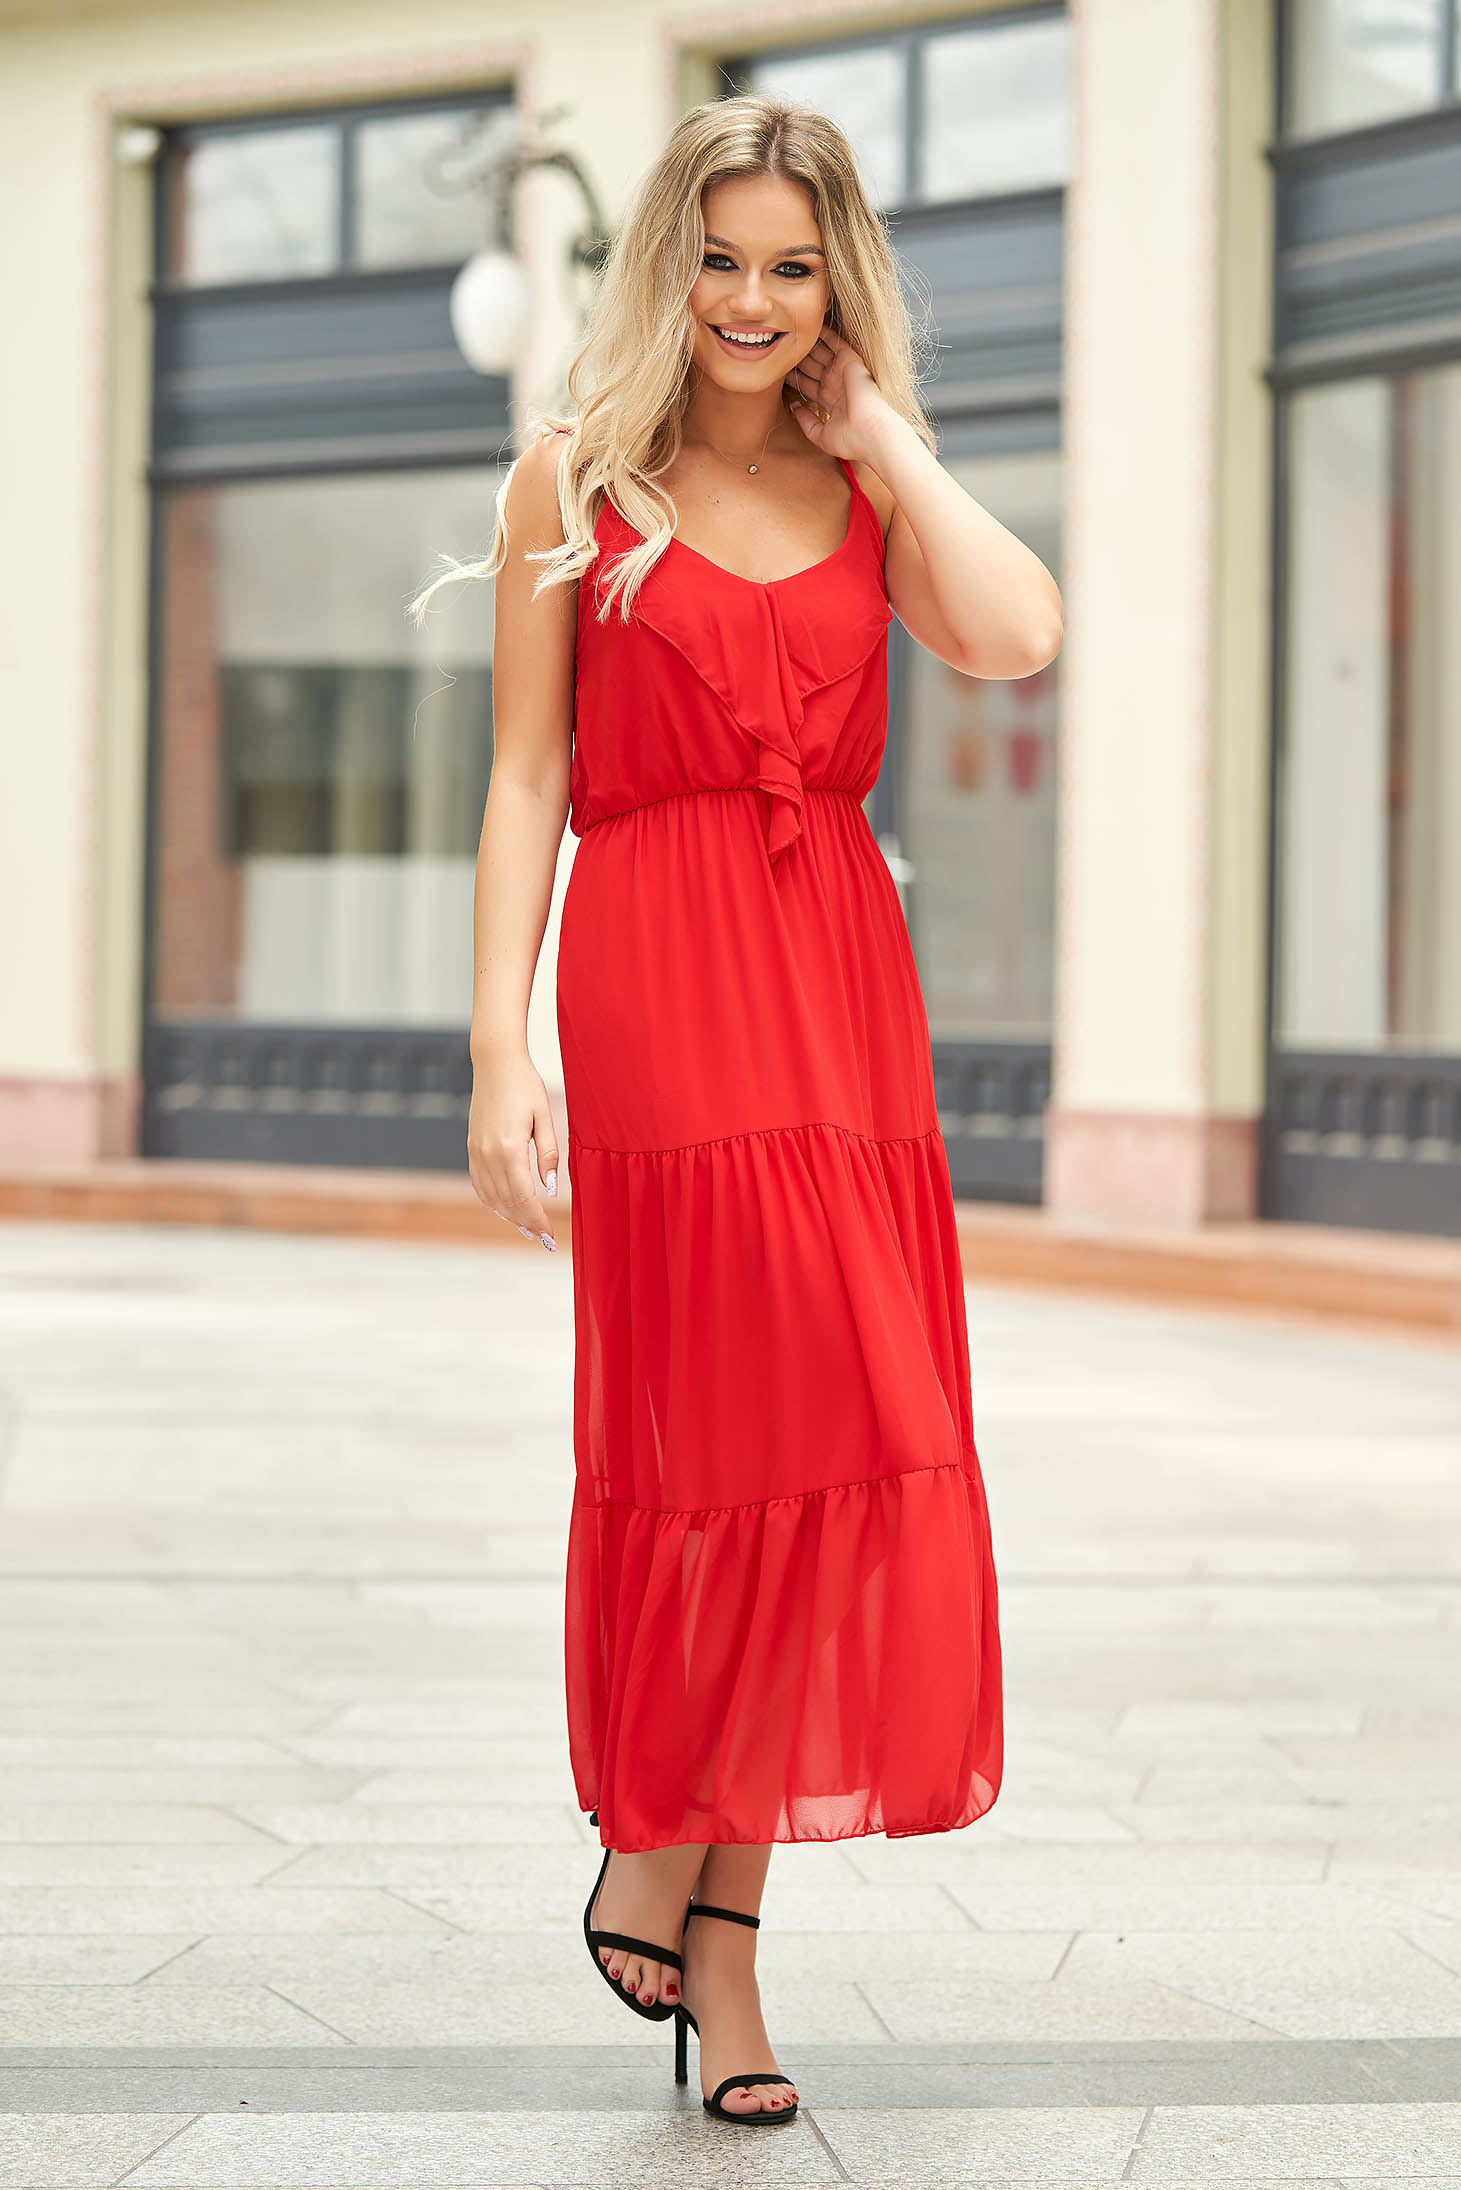 Red dress long daily from veil fabric sleeveless with ruffles on the chest